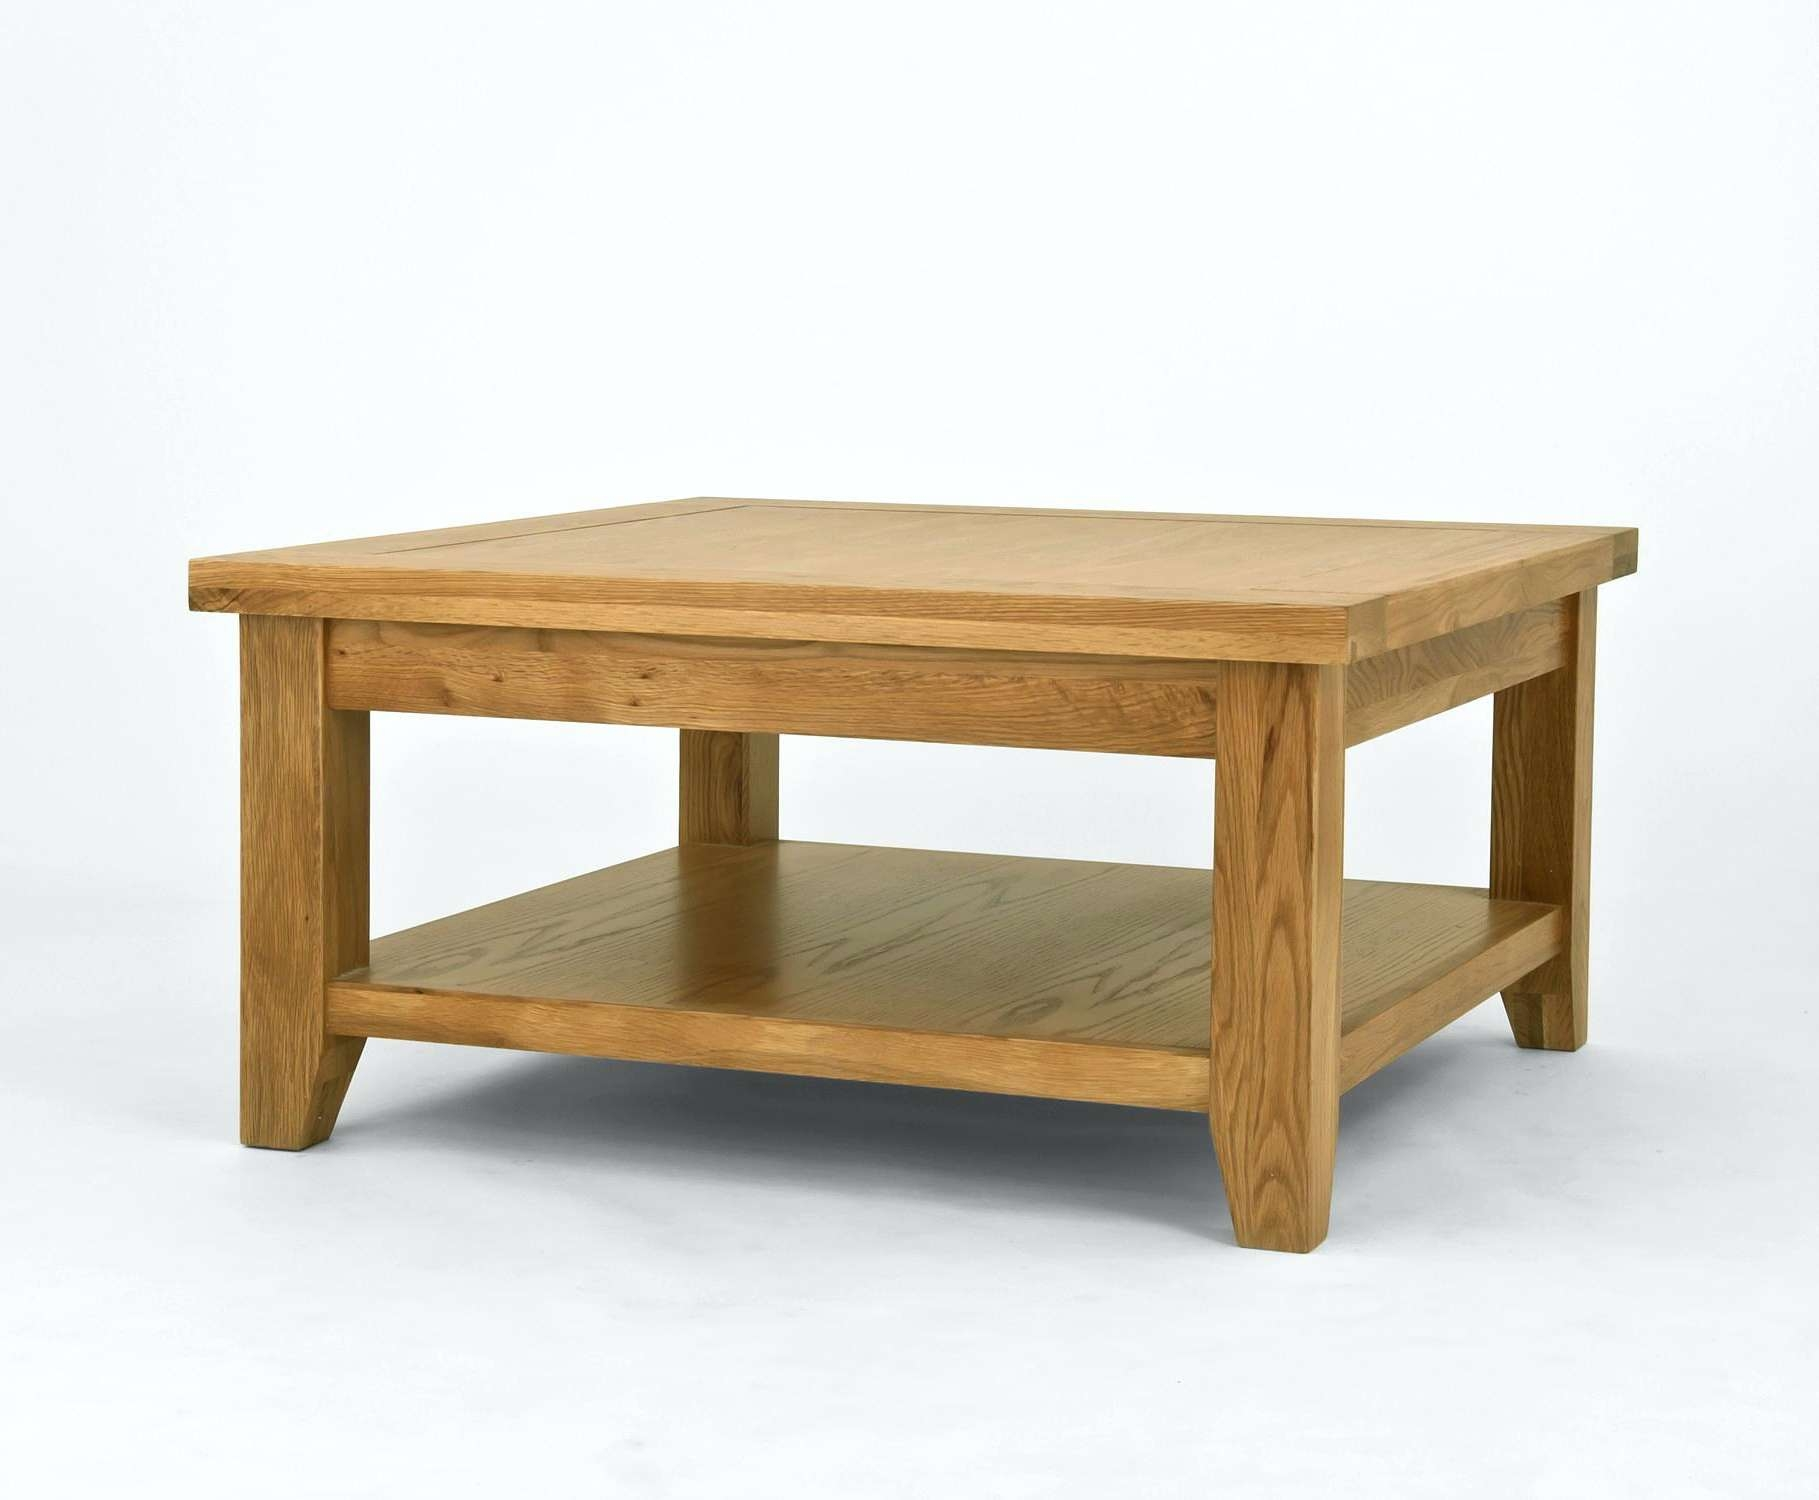 Provence Coffee Table Oak Square With Shelf Is An Extensive Solid Within Well Known Oak Coffee Tables With Shelf (View 16 of 20)